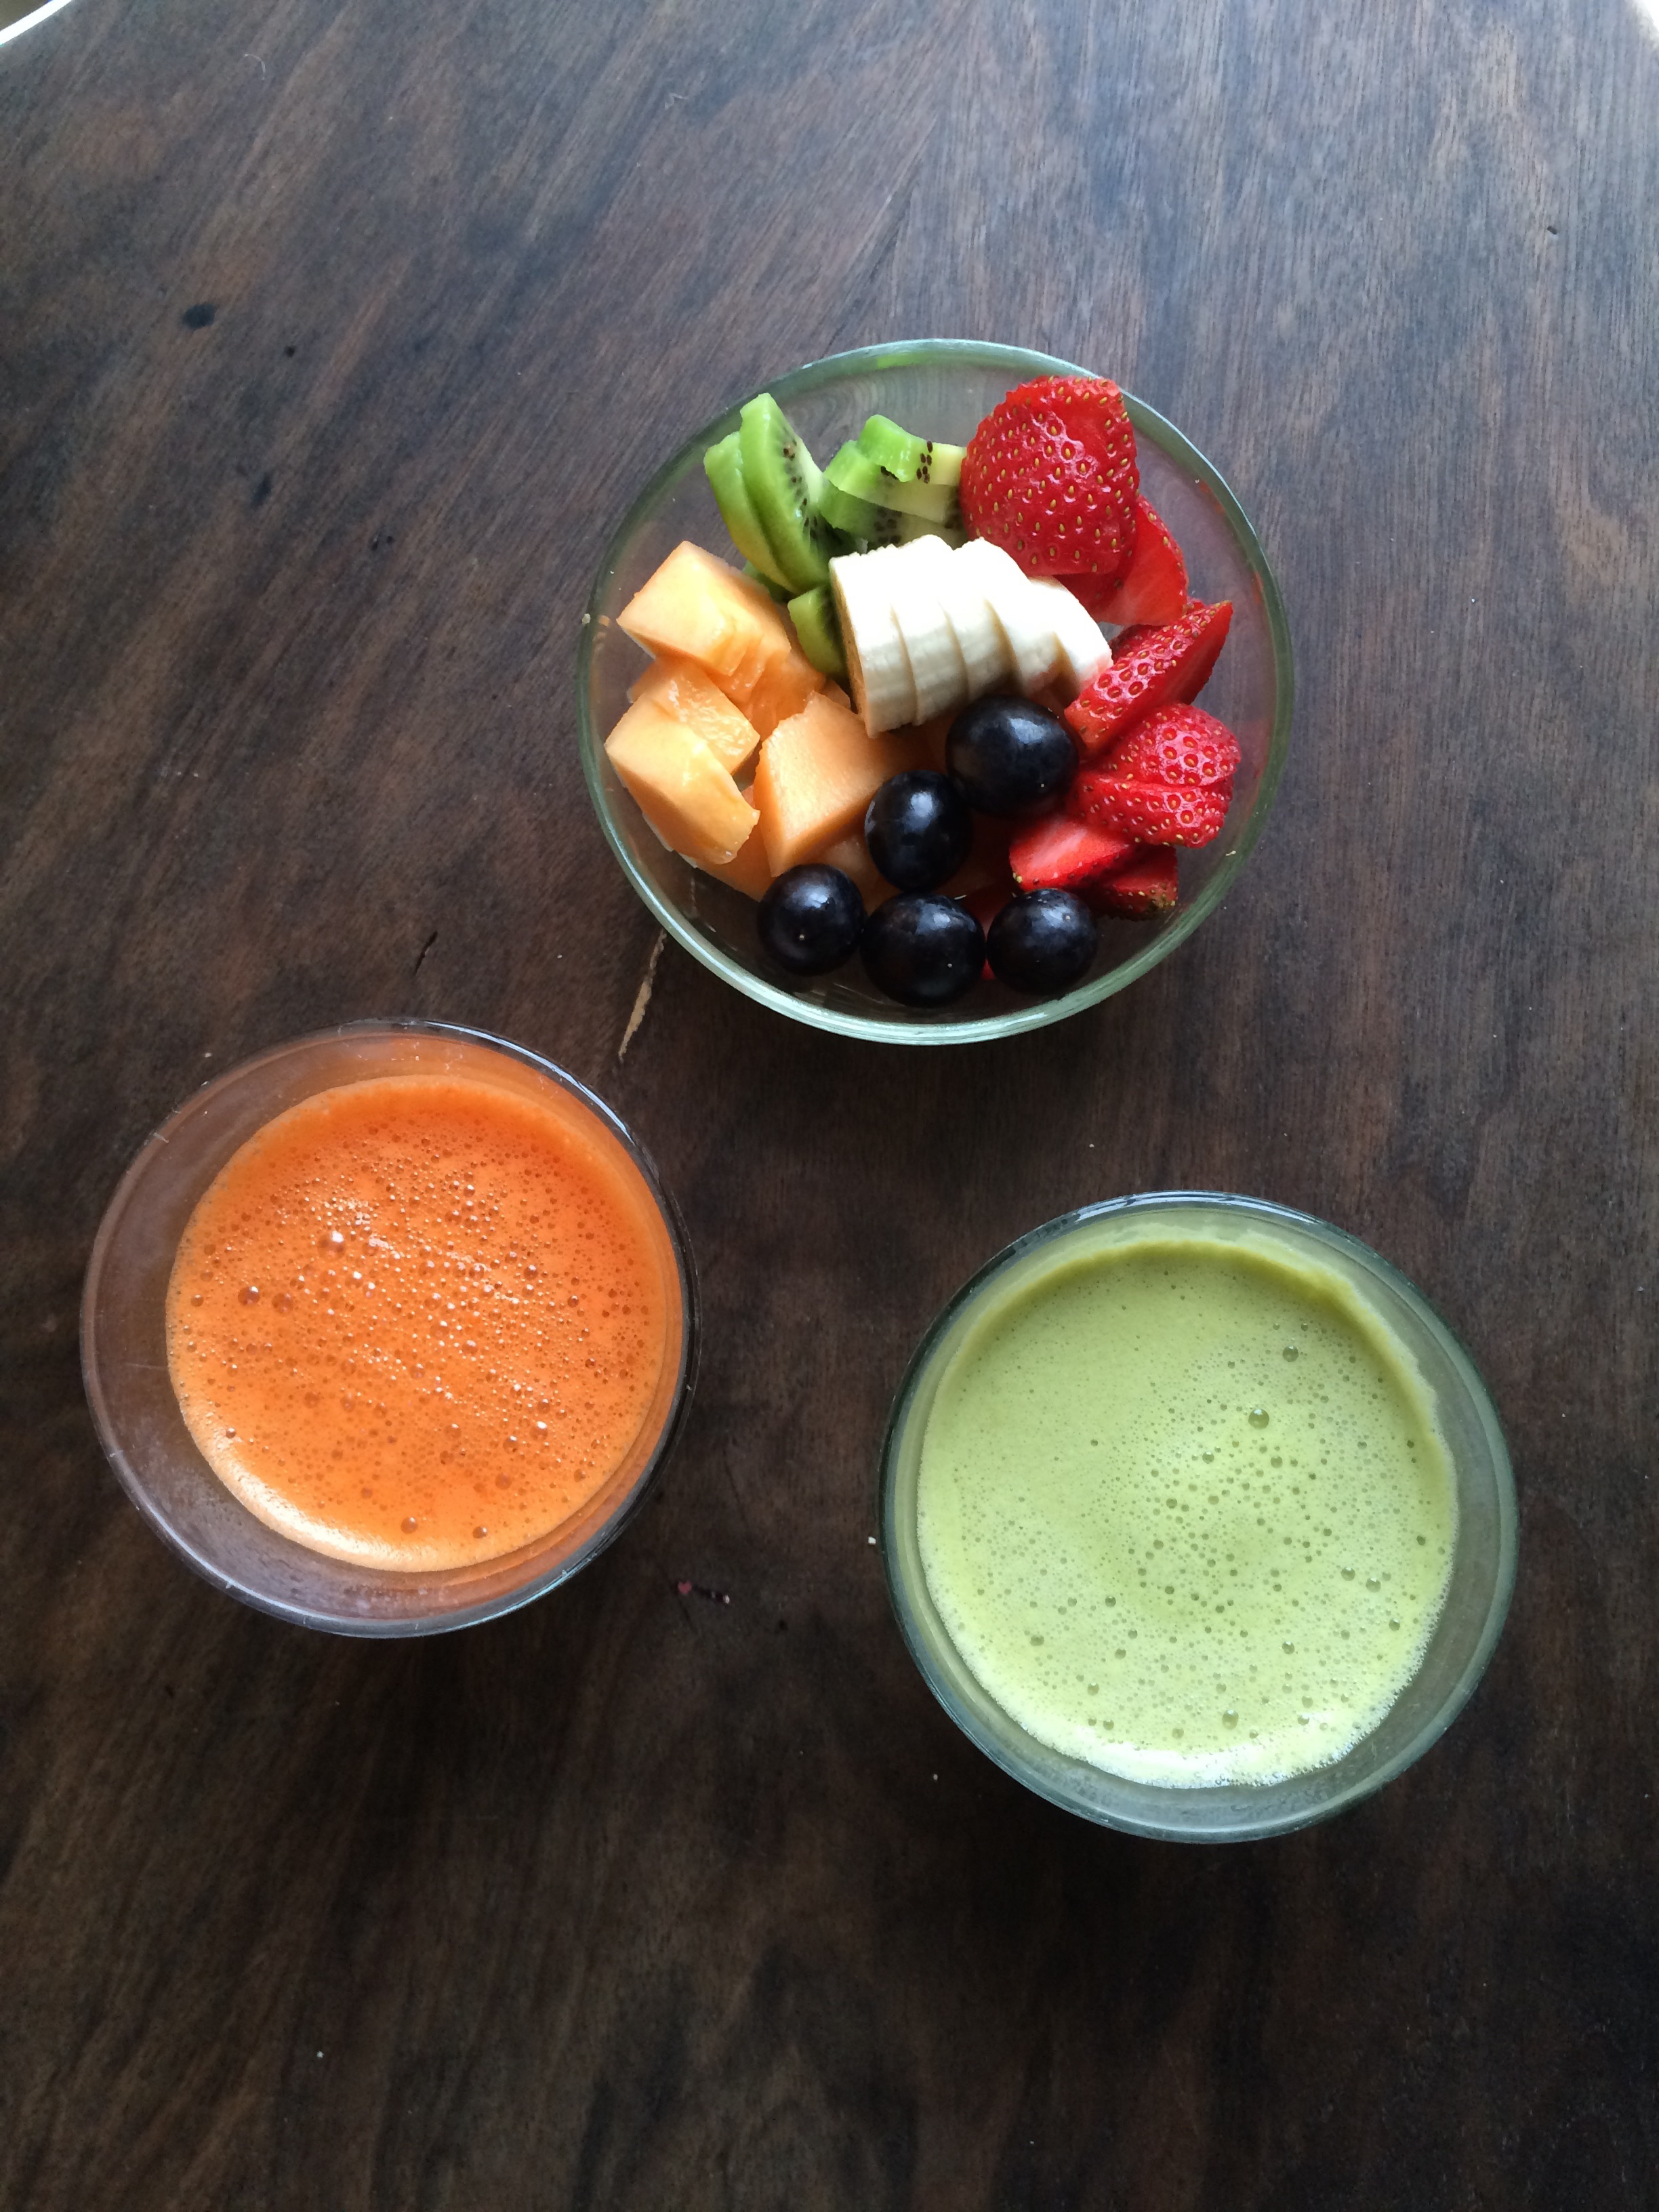 Fresh pressed juices & fruit